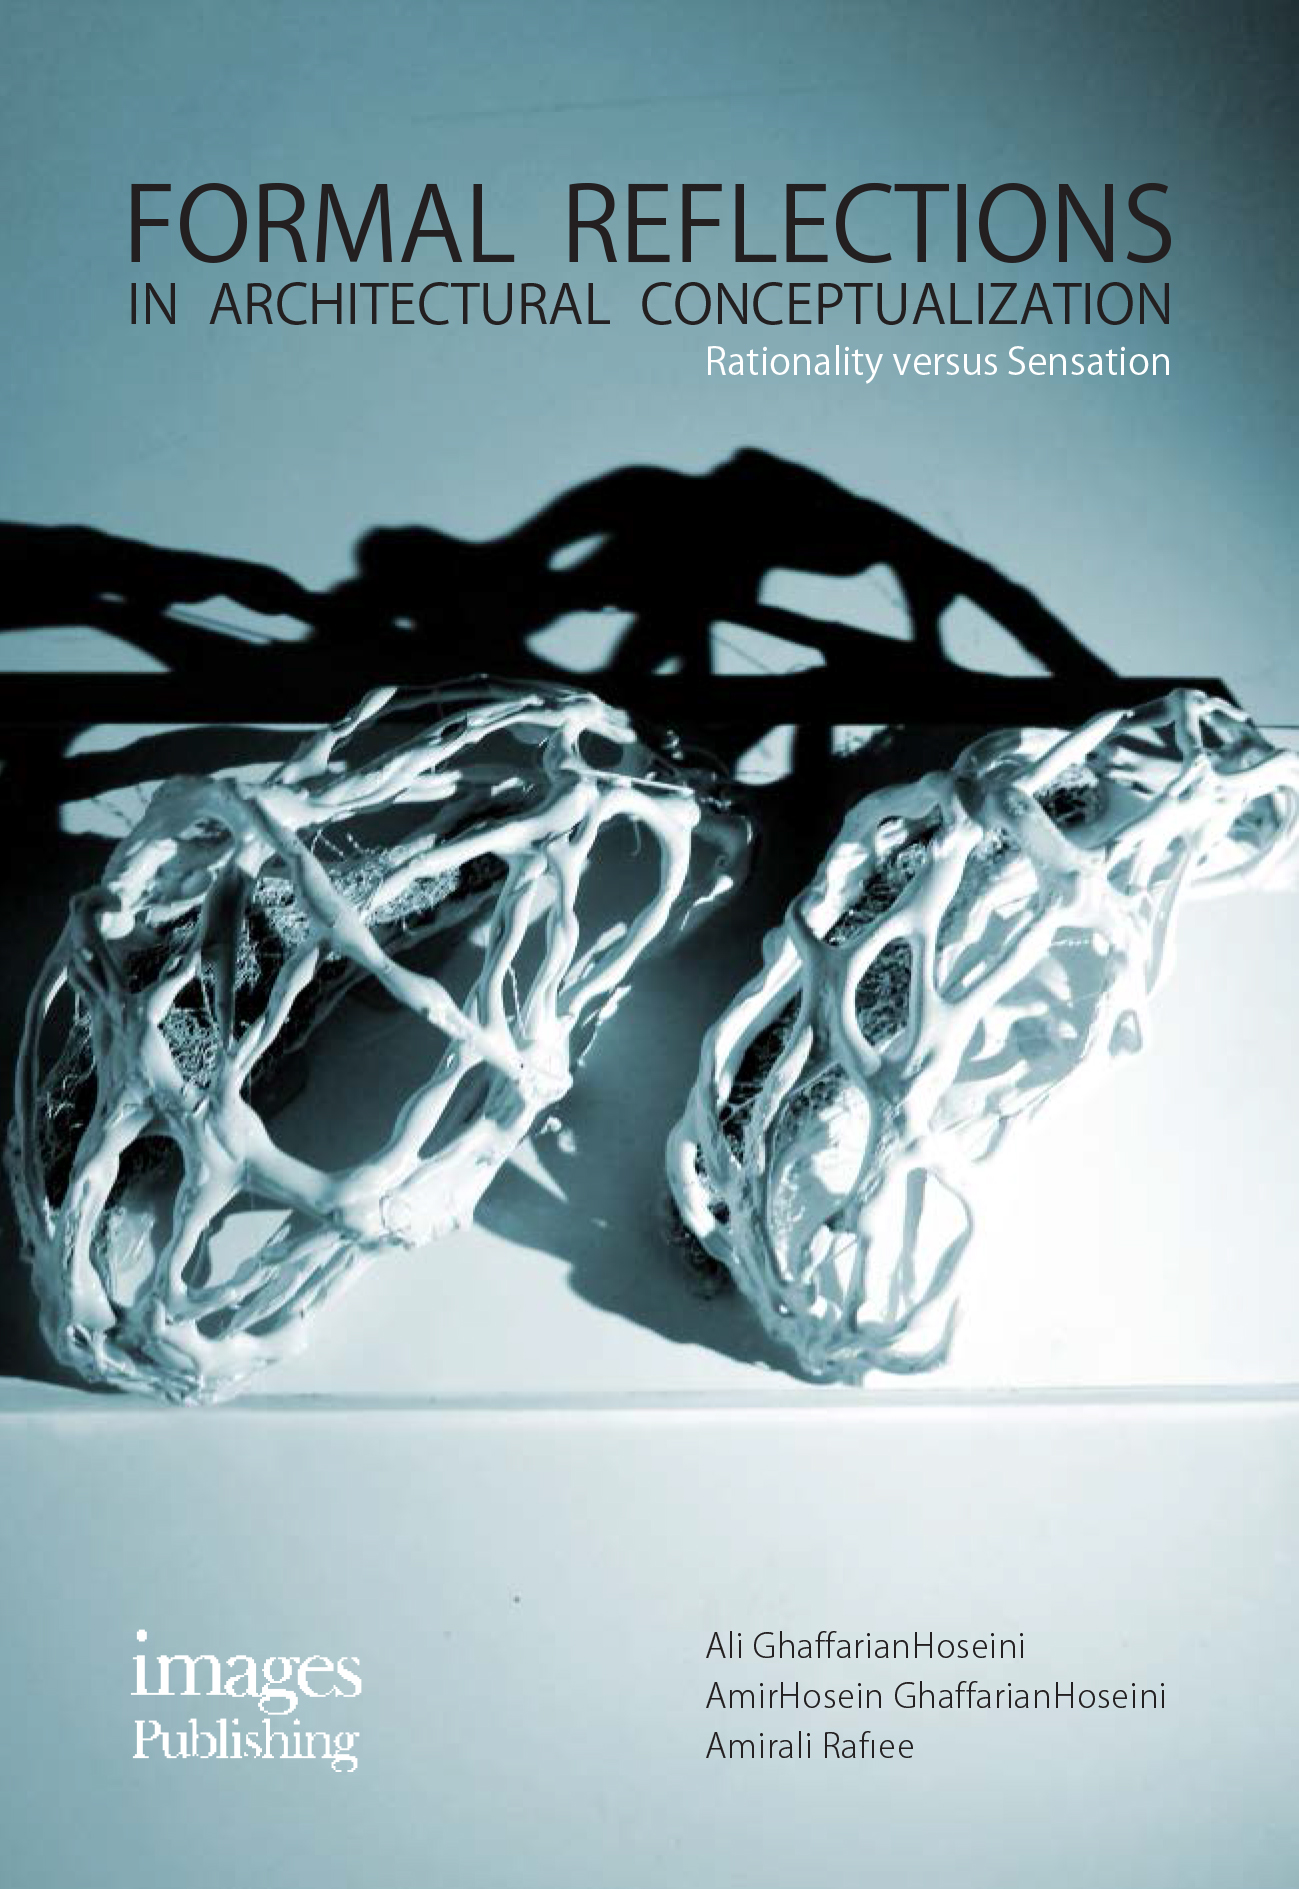 Formal Reflections    in Architectural Conceptualization  Rationality v Sensation   This title embraces philosophical theories behind architect-designed conceptualization, and how the potential arises for the generation of further innovativeideas. Featuring chapters on Architectural Design as a Way of Thinking, Conceptualization, Design Progression, Form, Function & Order: Conceptual Thinking, Conceptualization in the Design Process, Design Development and Space Crafting.     Images Publishing / Google Books / Google Play